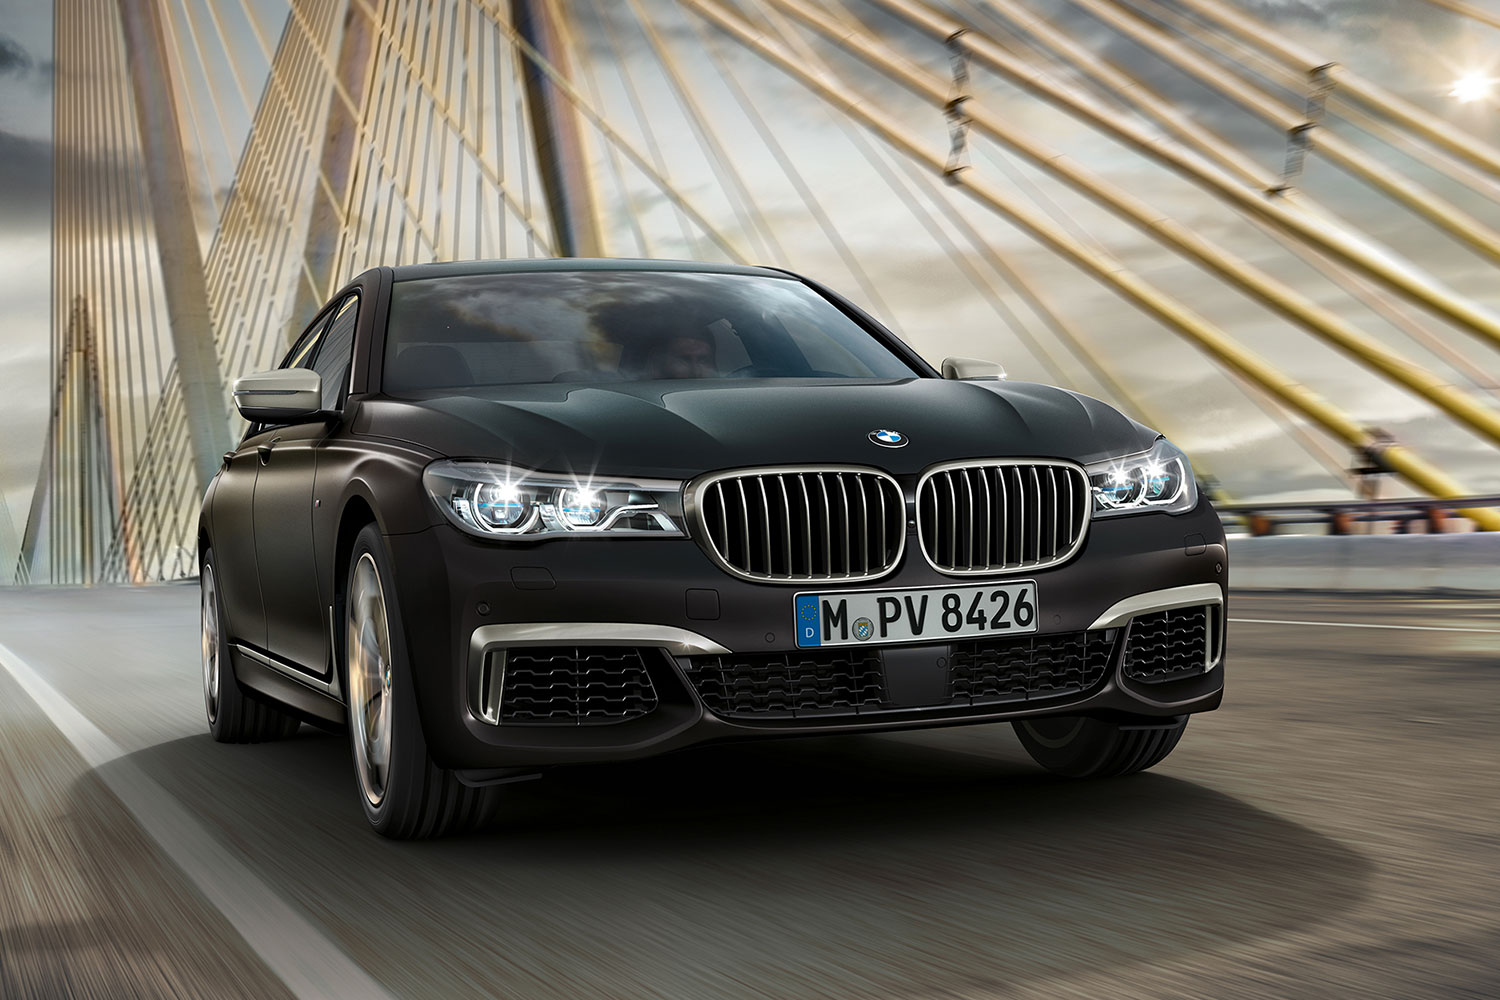 7 New Luxury Cars Coming Out For 2016: BMW's 750d Marks A Major Milestone In The History Of The